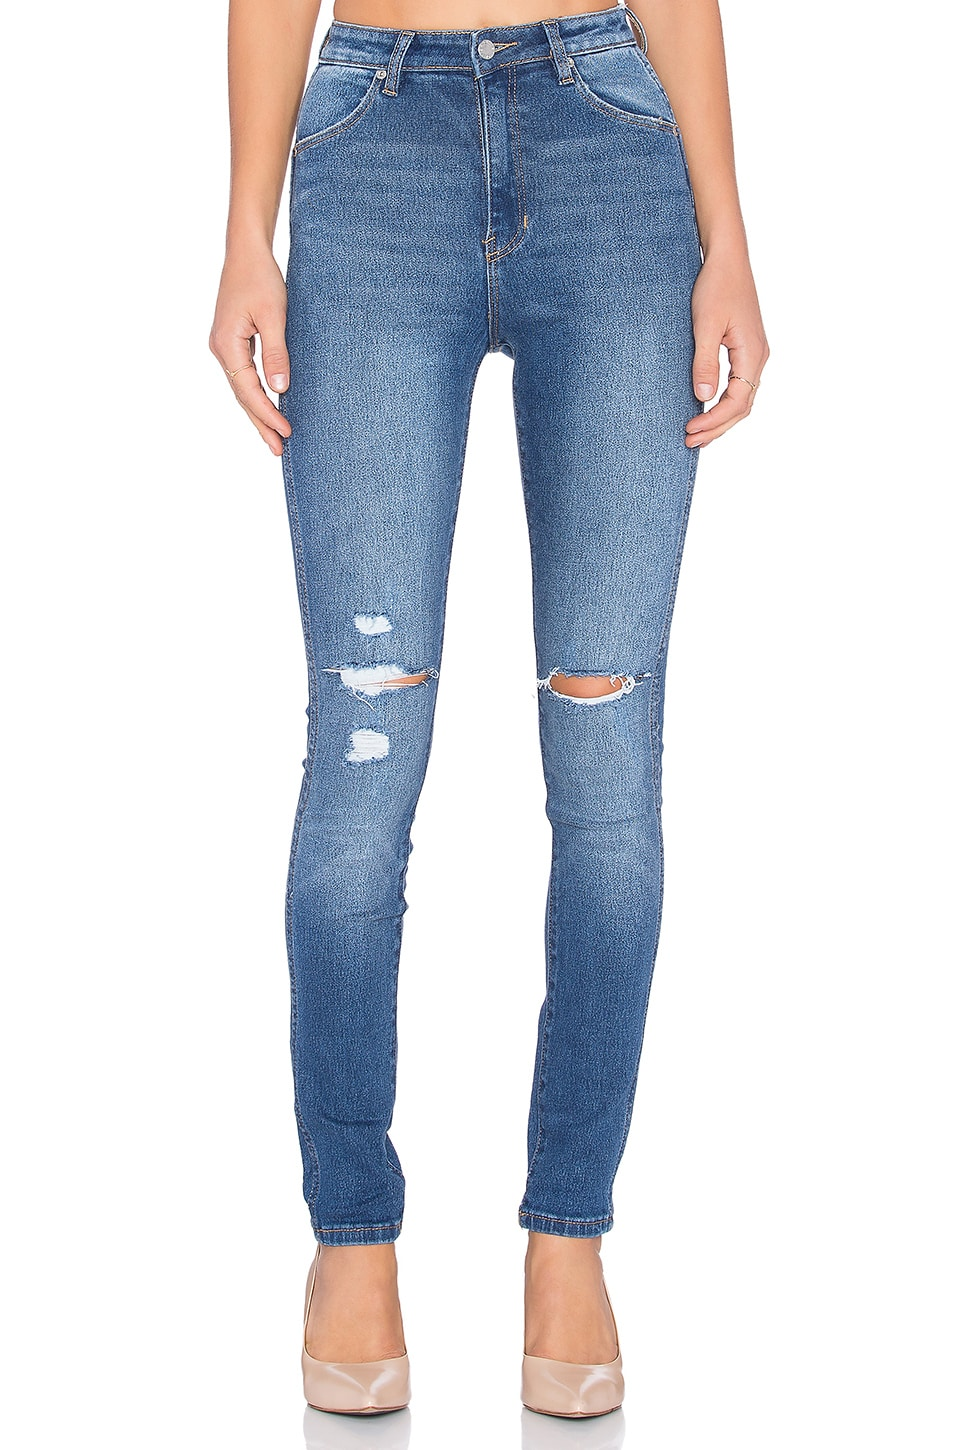 East Coast Distressed Skinny